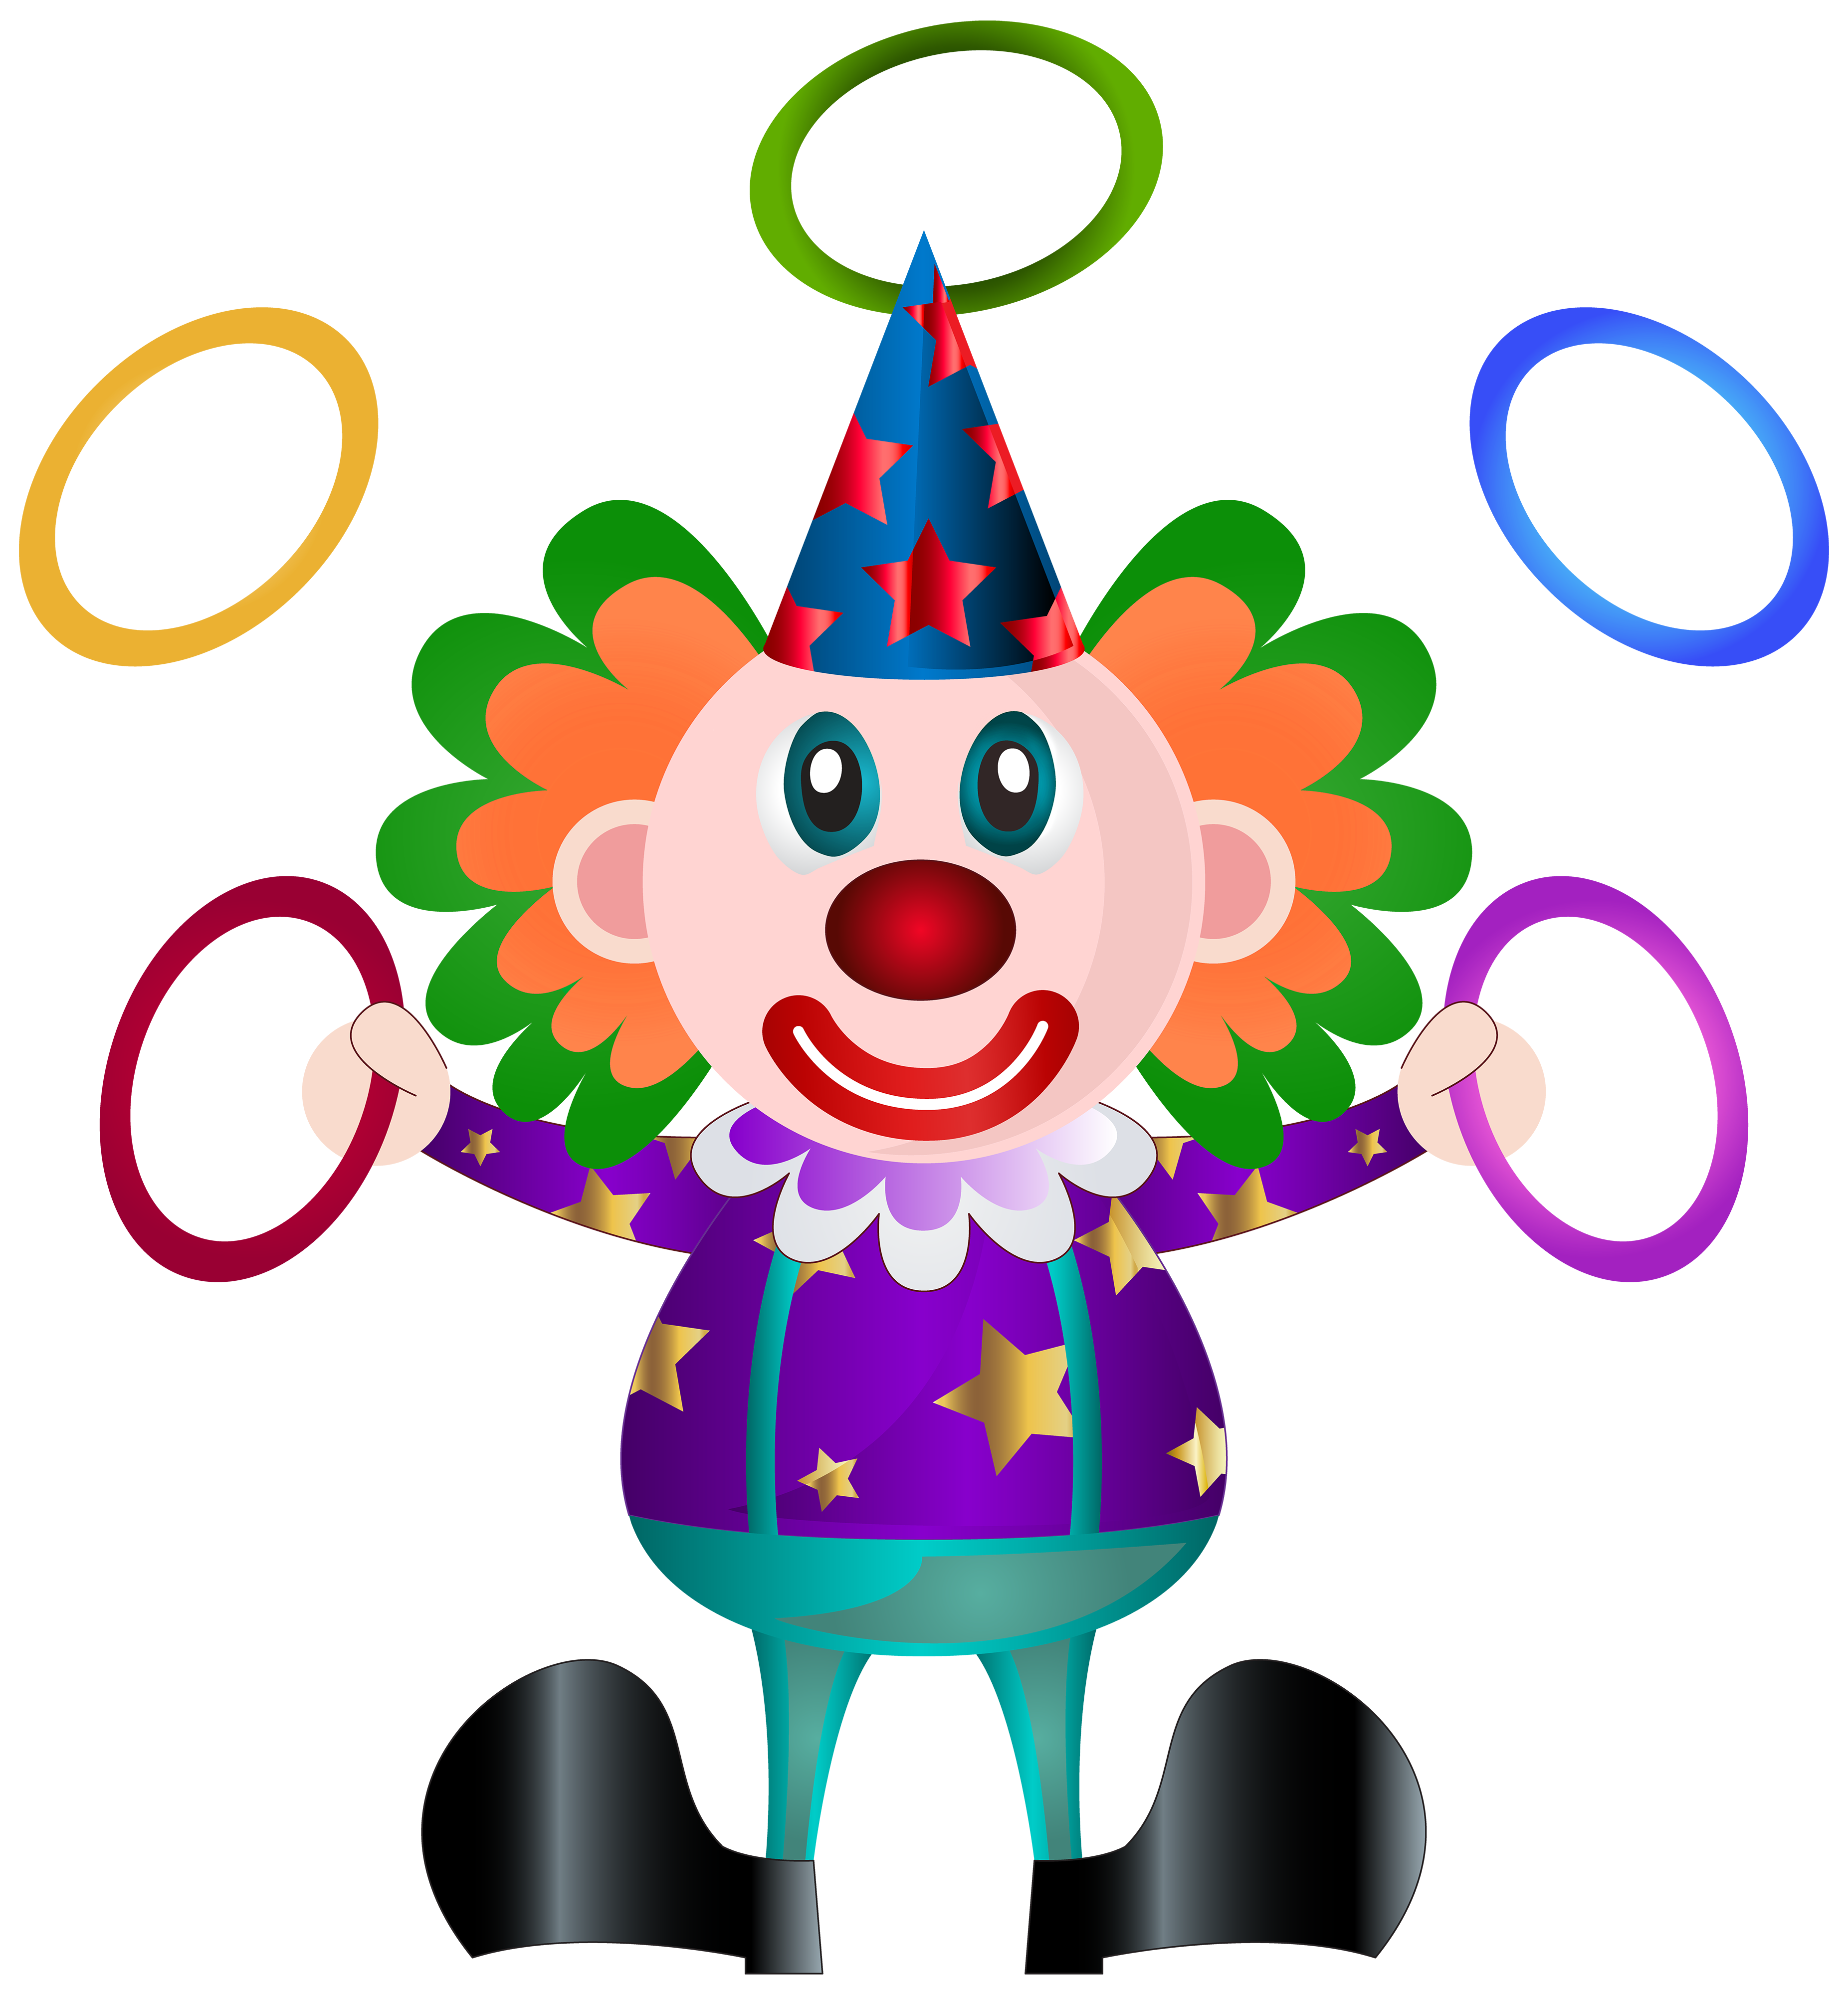 Png clip art picture. Clown clipart clip royalty free